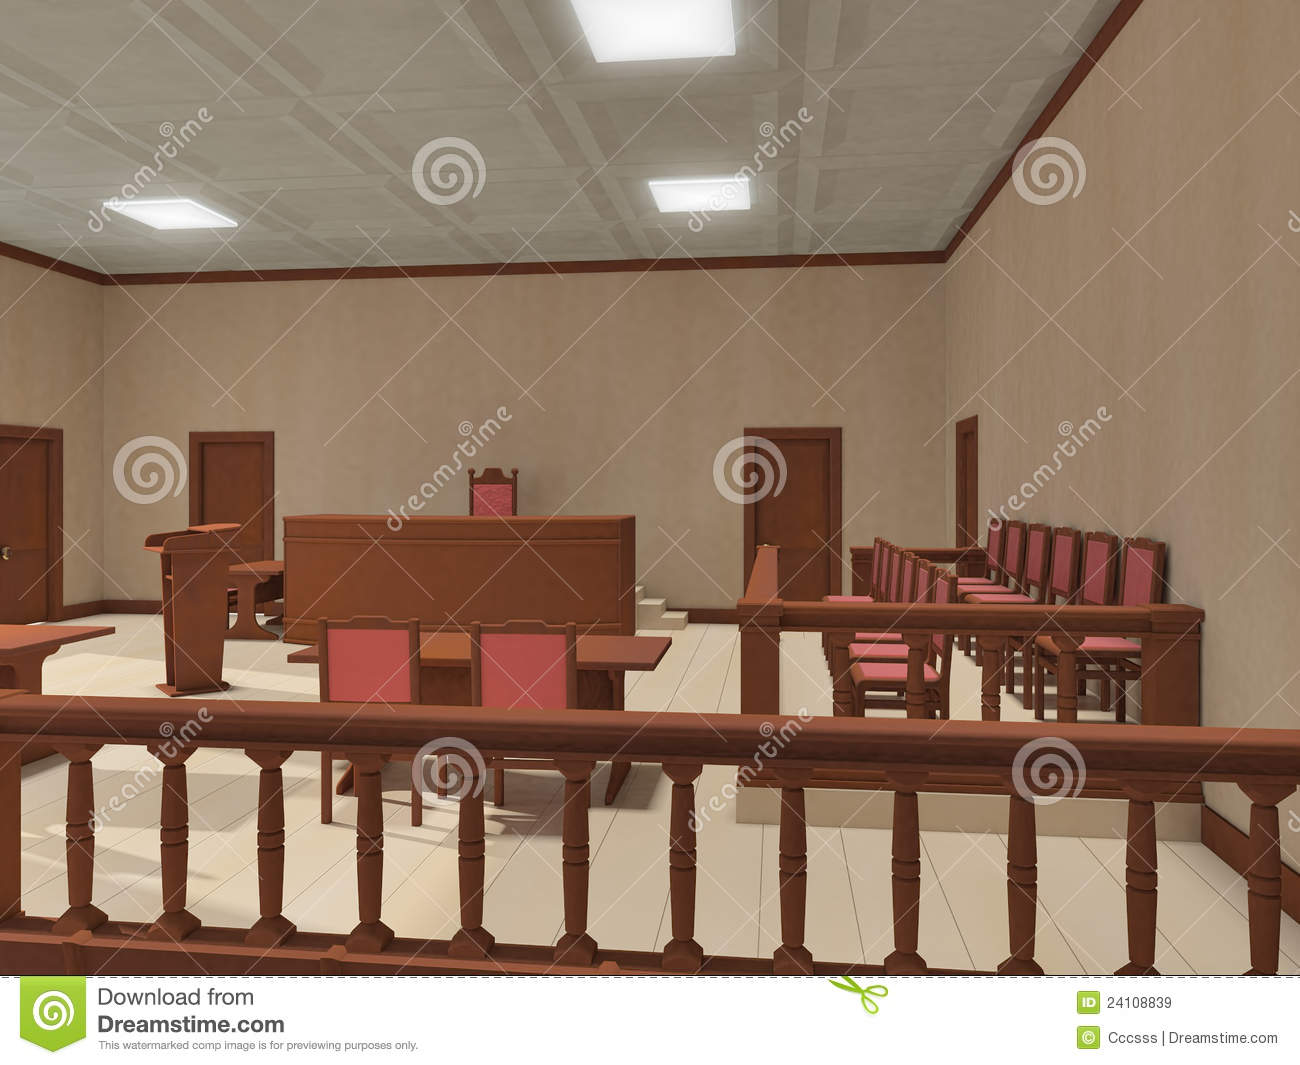 Courtroom With People Clipart Courtroom